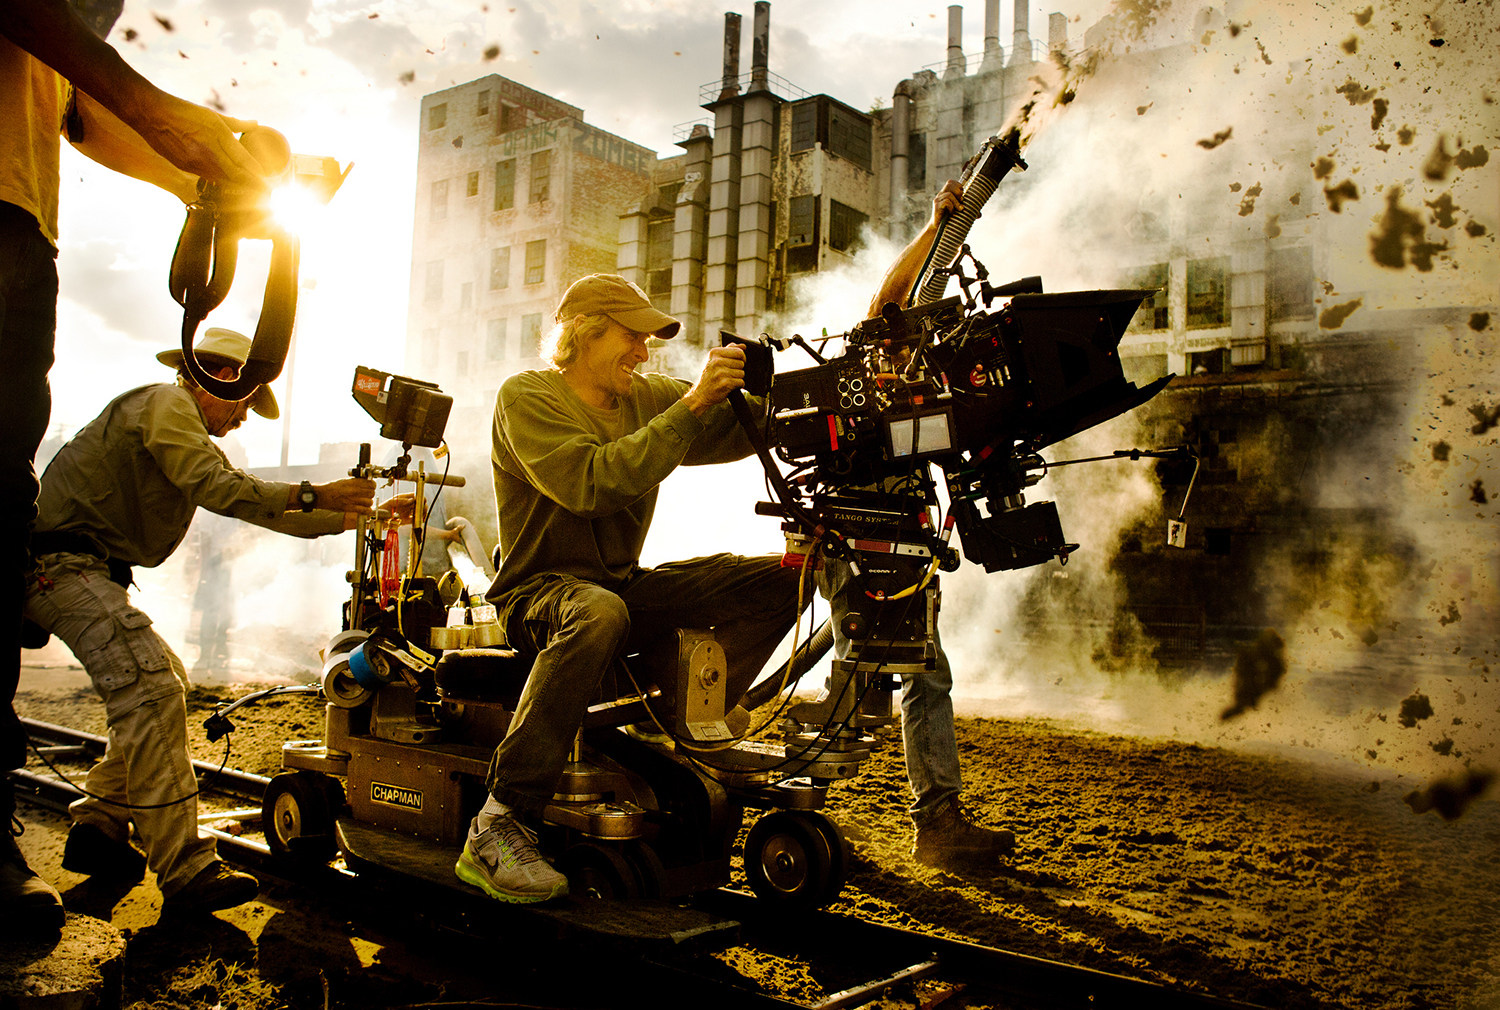 Transformers: Age of Extinction Behind the Scenes Photos & Tech Specs